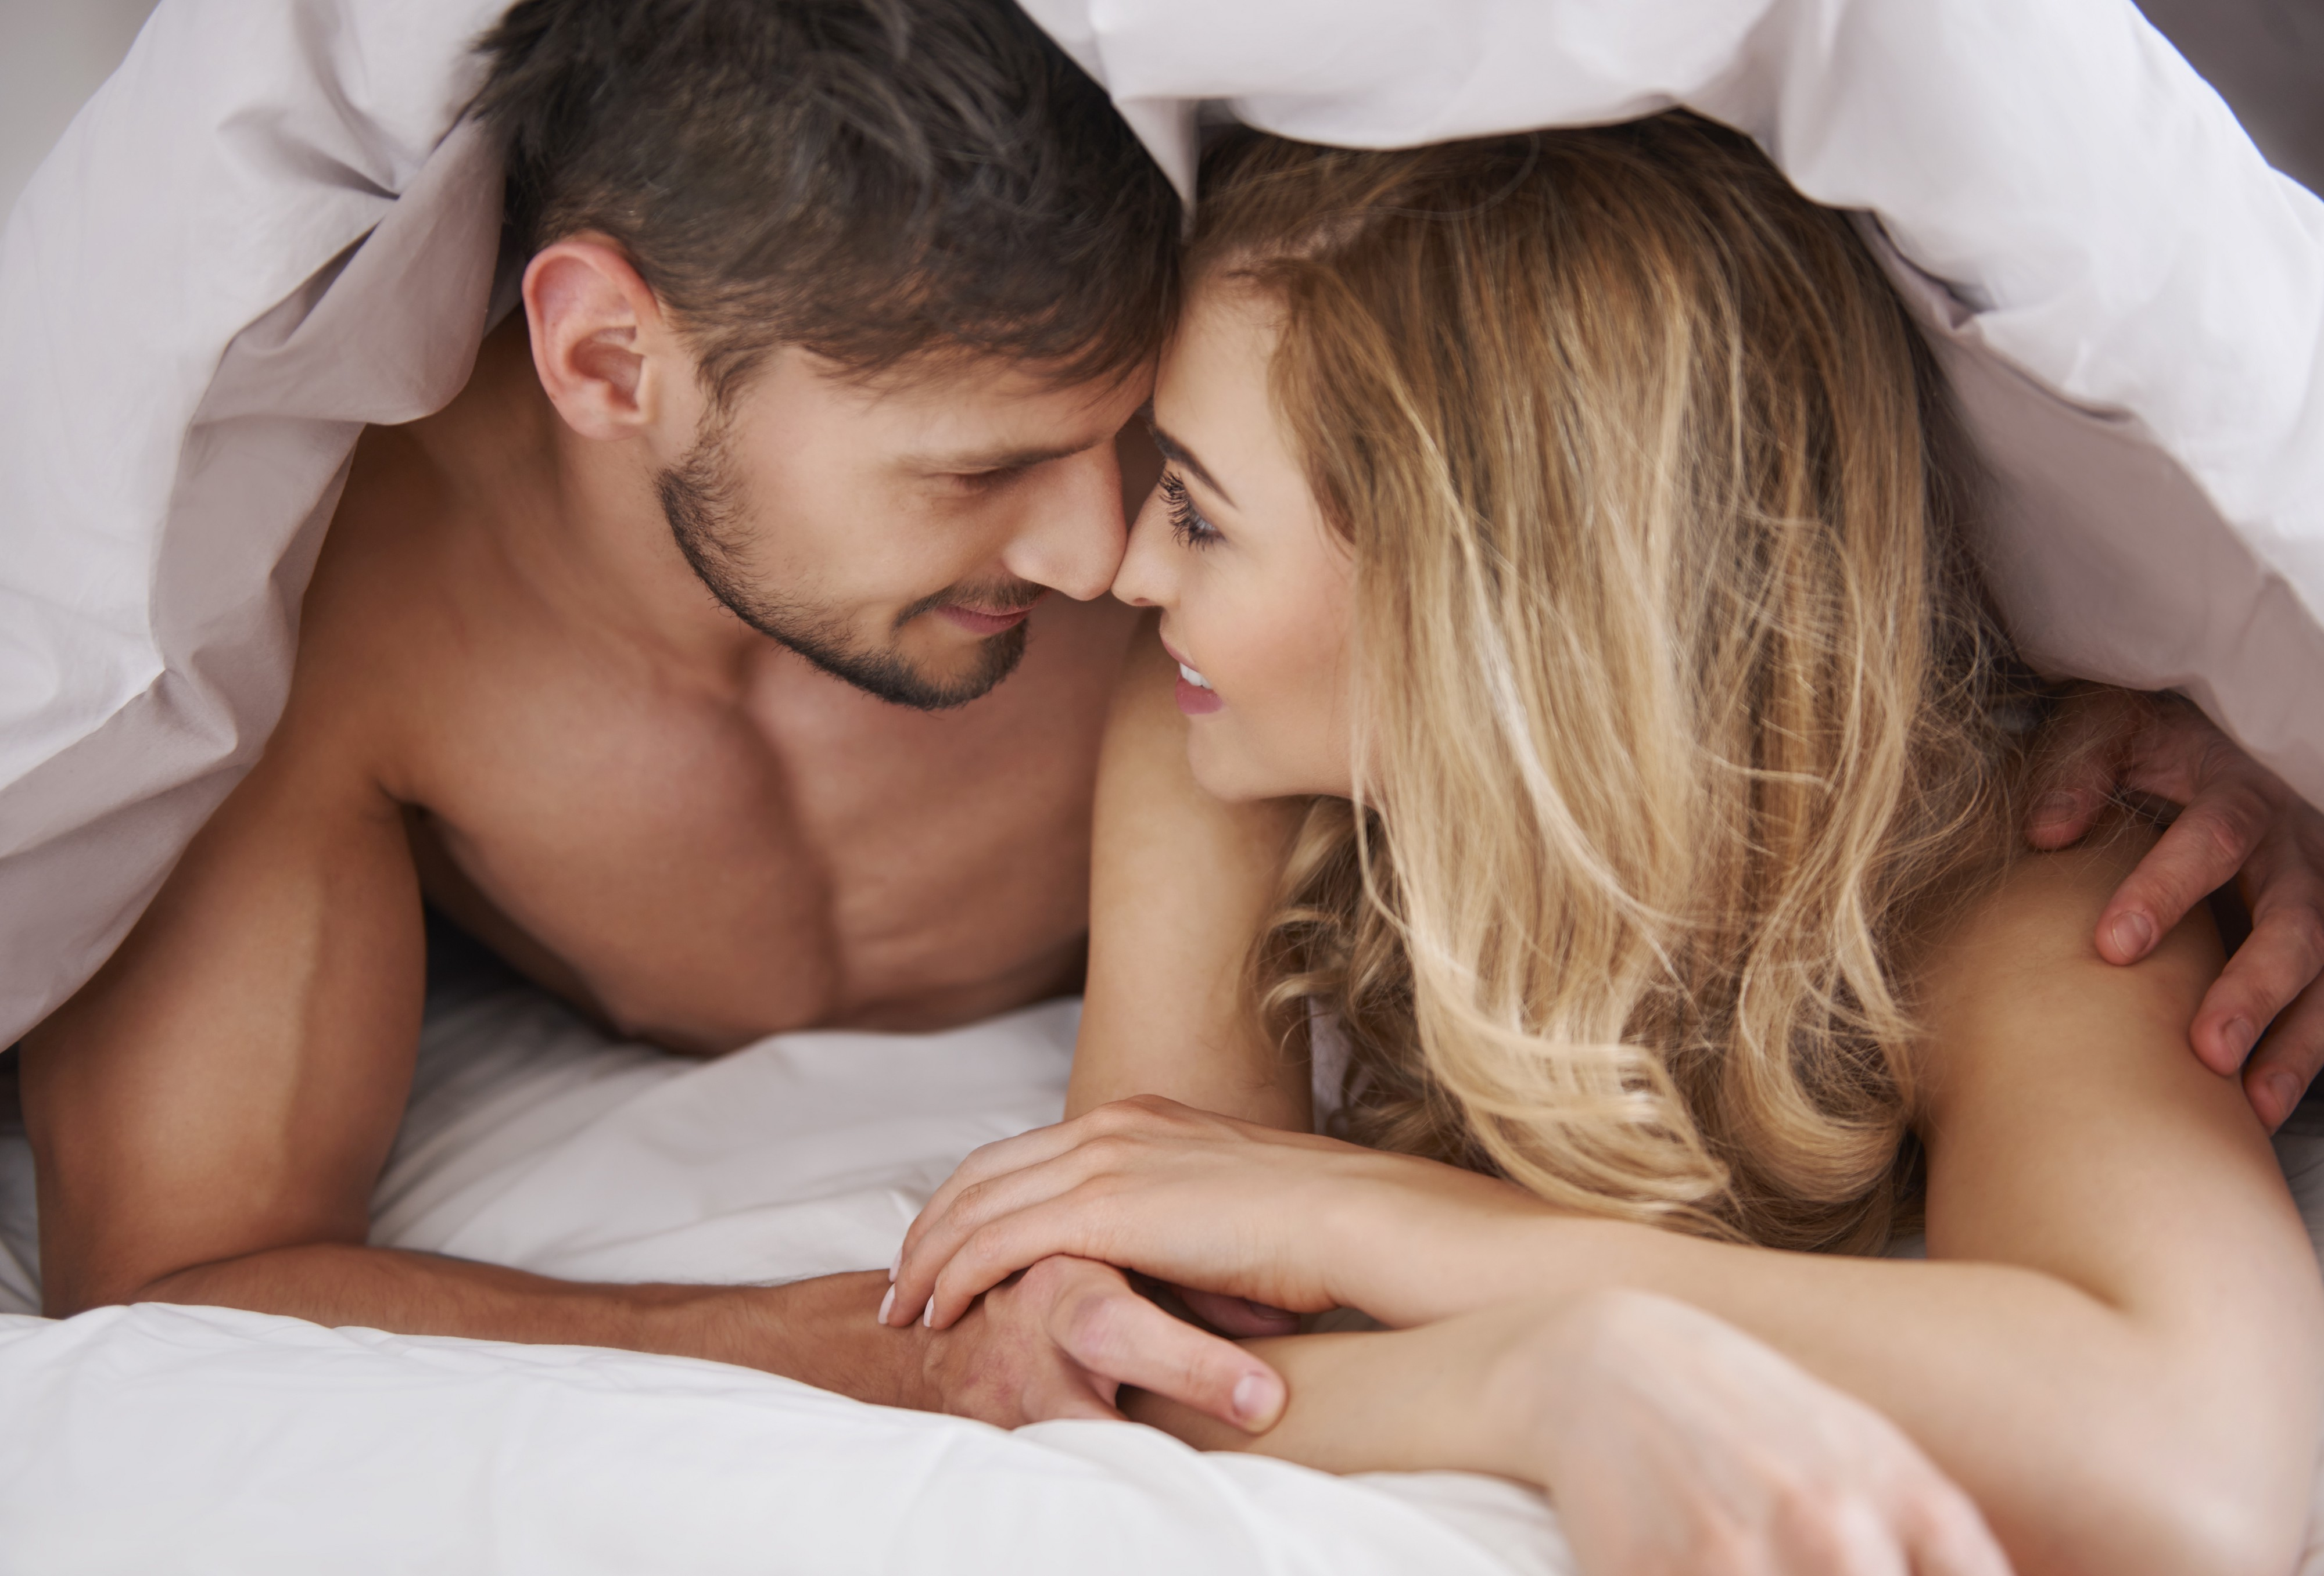 Woman man sexually a when to is a attracted 15 Undeniable